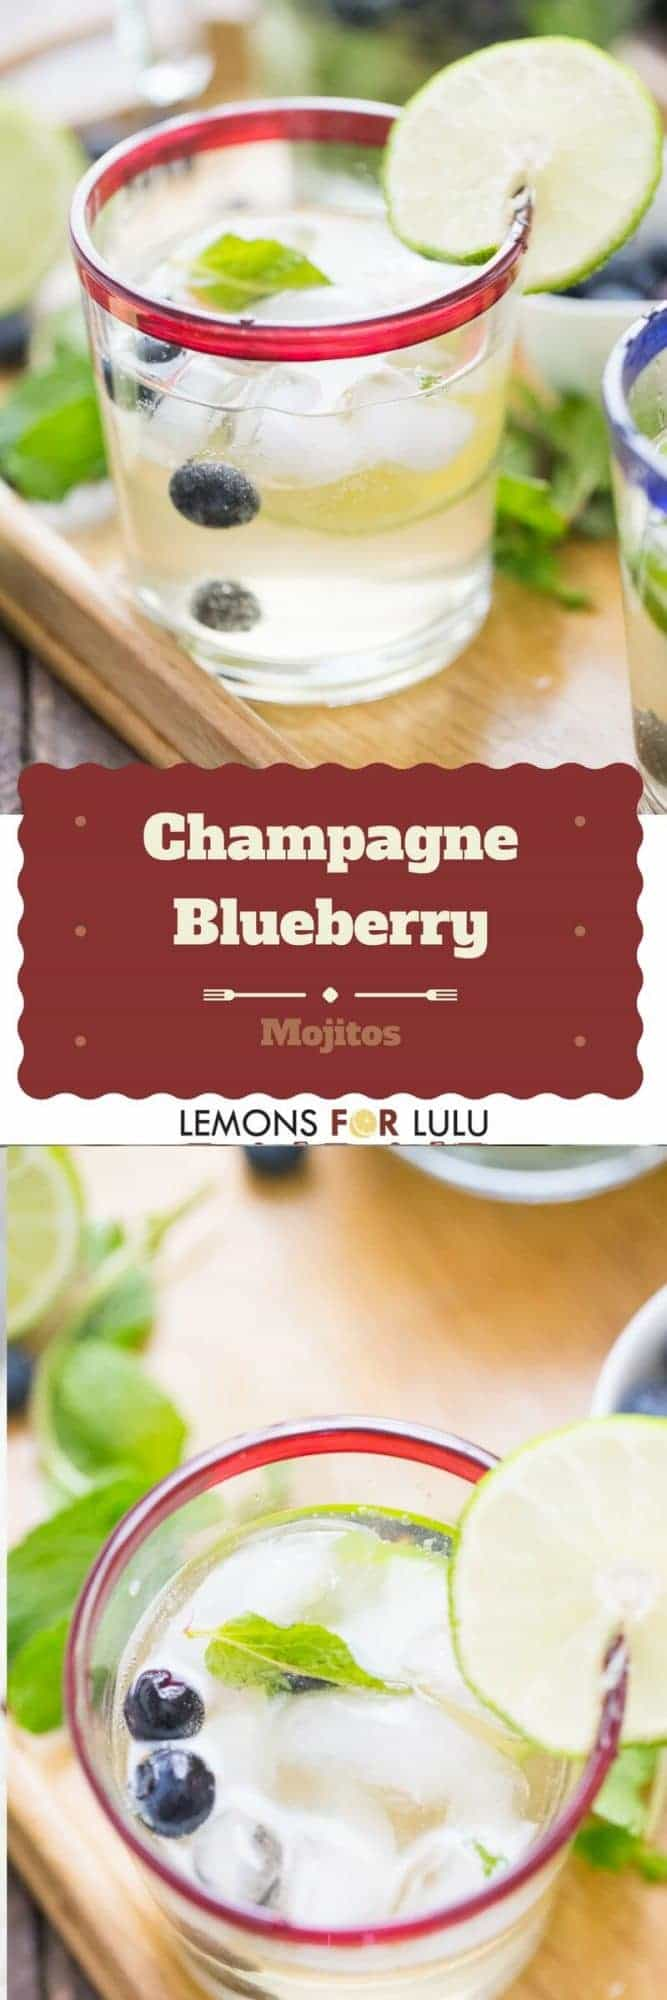 photo collage - glasses of Champagne Blueberry Mojitos with limes, blueberries, fresh mint leaves and ice.